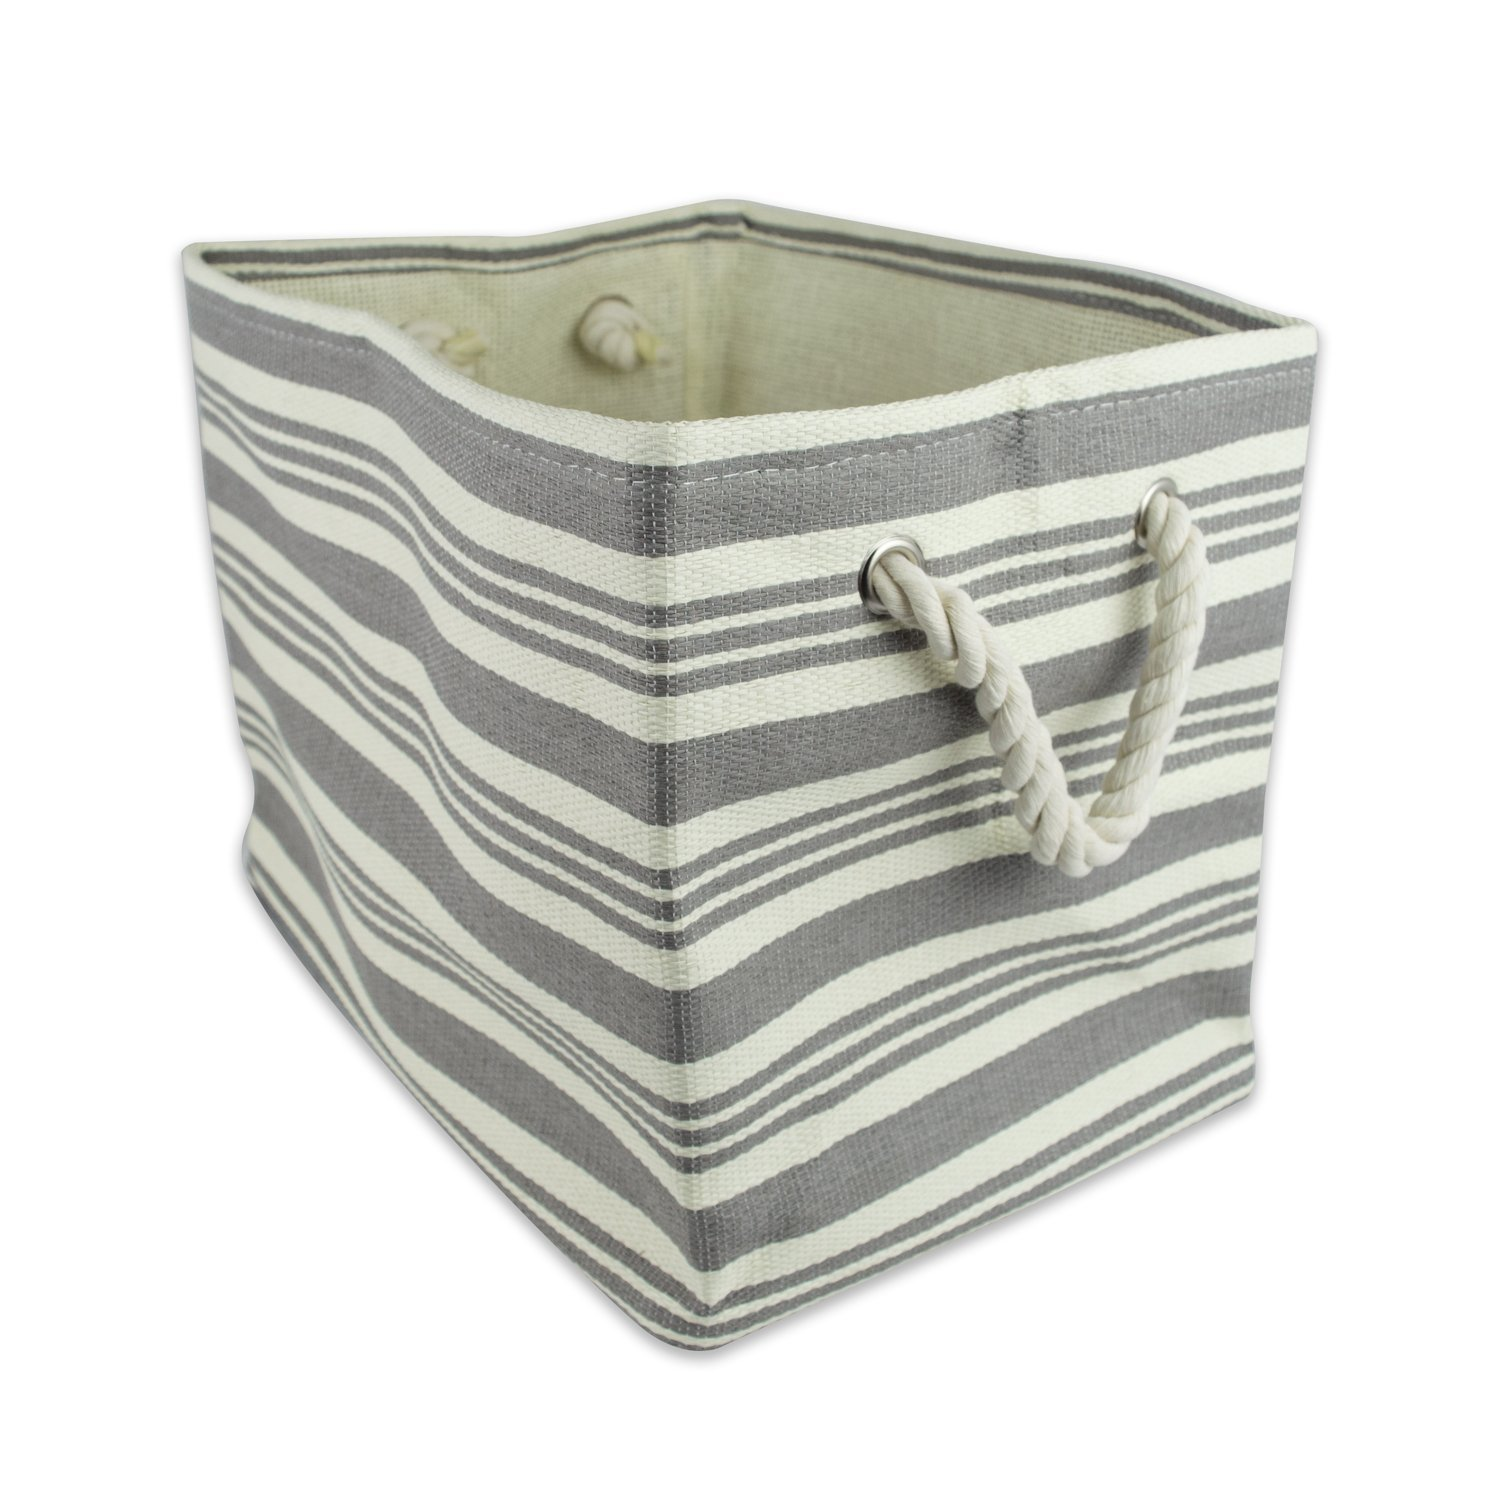 DII Woven Paper Storage Basket or Bin, Collapsible & Convenient Home Organization Solution for Office, Bedroom, Closet, Toys, & Laundry (Large - 17x12x12�), Gray Urban Stripe